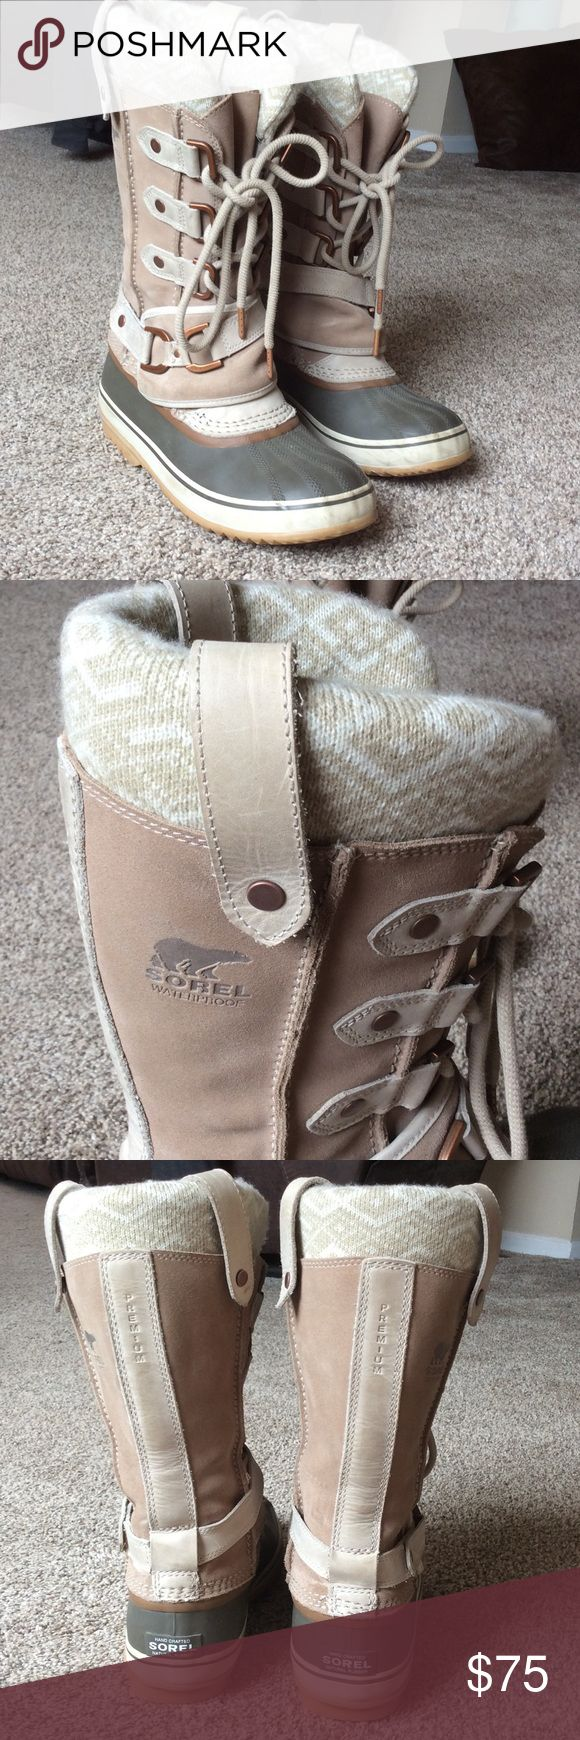 Sorel Joan of Arctic Waterproof Winter Boots Super cute, VERY warm winter/ snow boots! Heavy duty rubber sole and thick knit print to upper leg area. Great condition! Sorel Shoes Winter & Rain Boots